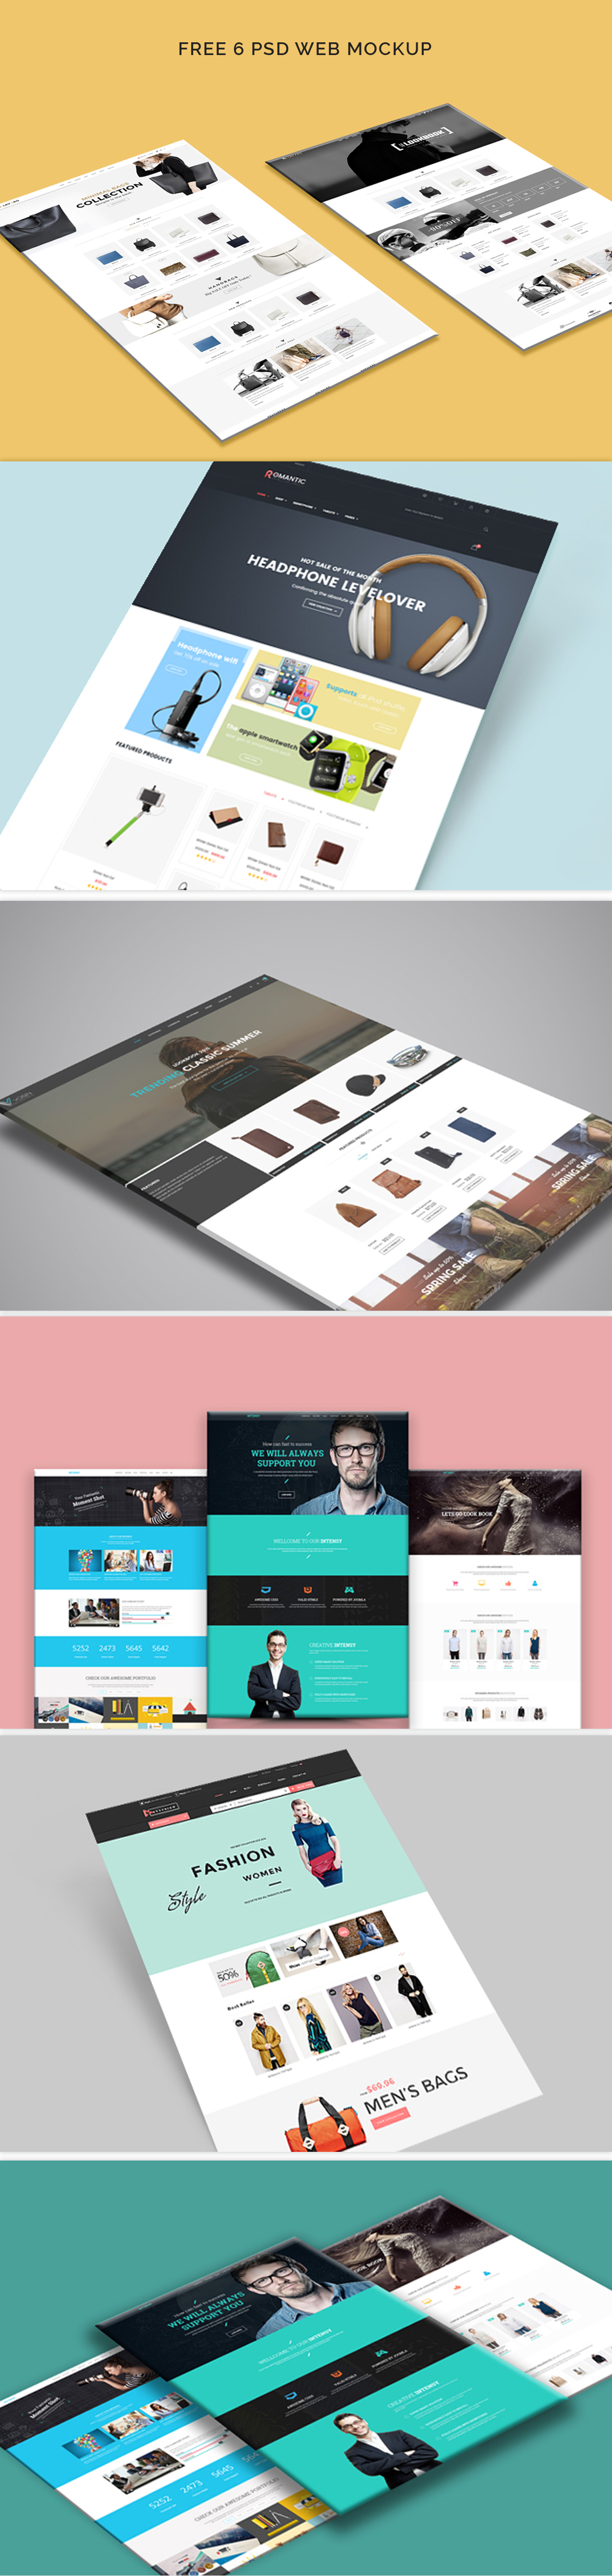 free web template mockup on behance